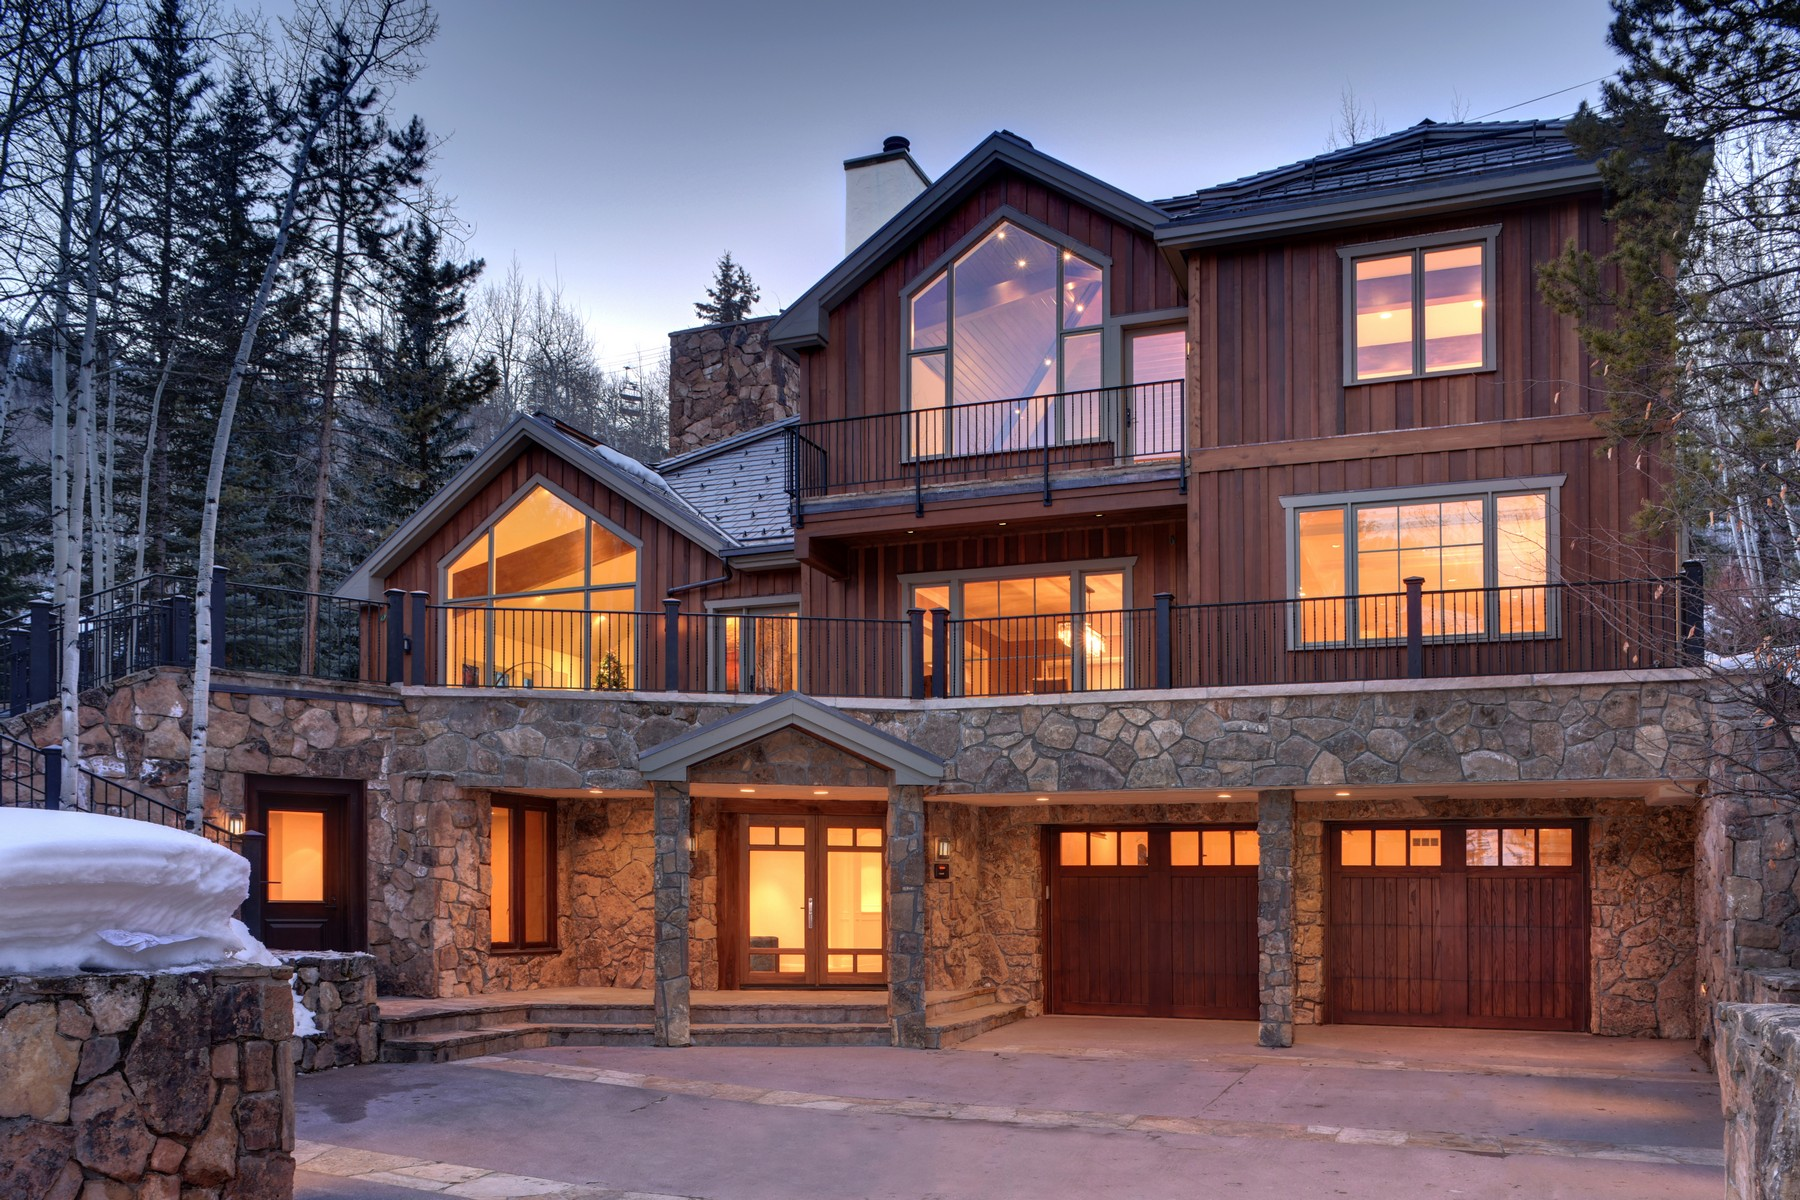 獨棟家庭住宅 為 出售 在 Ski inSki out Residence in Beaver Creek 65 Elk Track Ct Beaver Creek, Beaver Creek, 科羅拉多州, 81620 美國